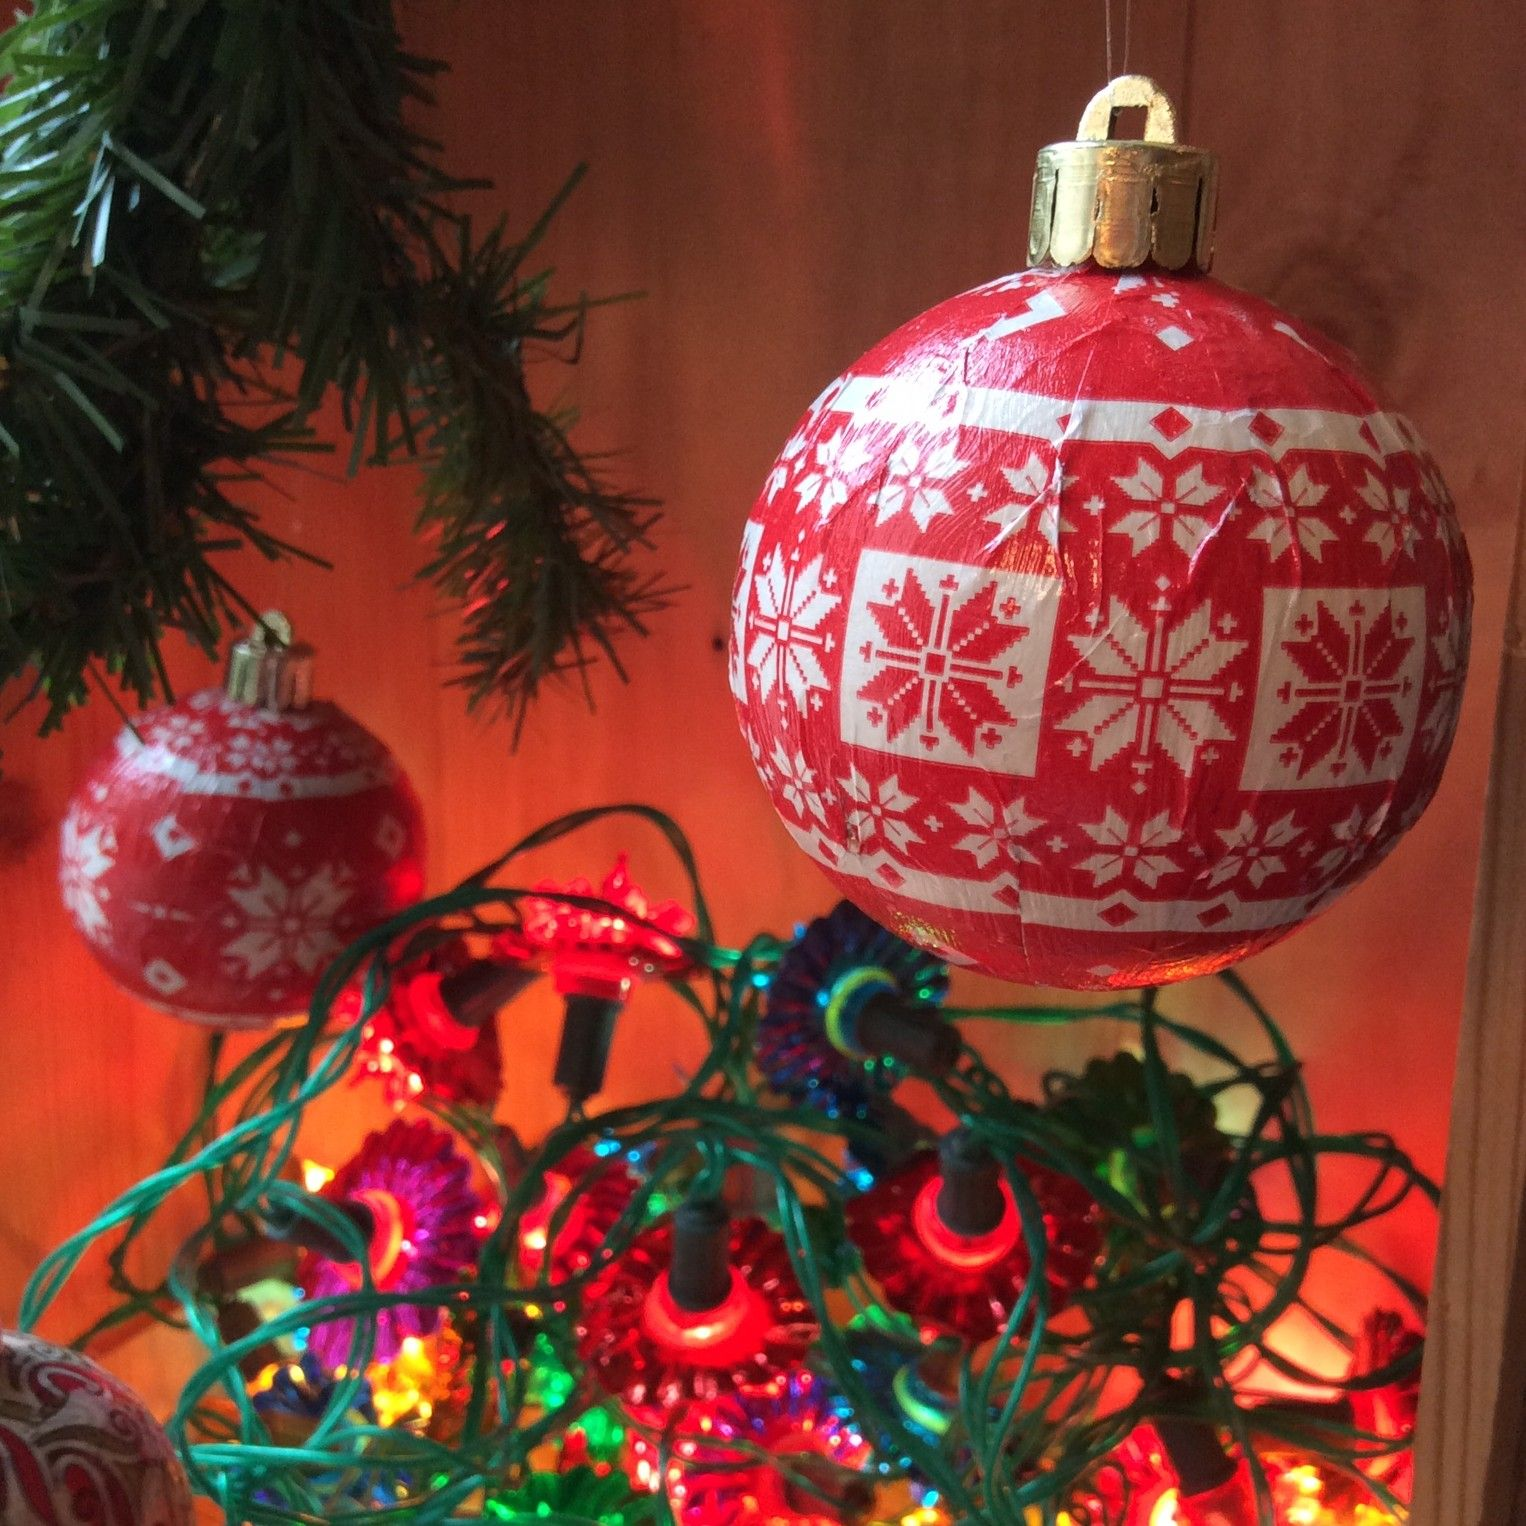 Upcycled Christmas bauble project using Decopatch paper to bring new